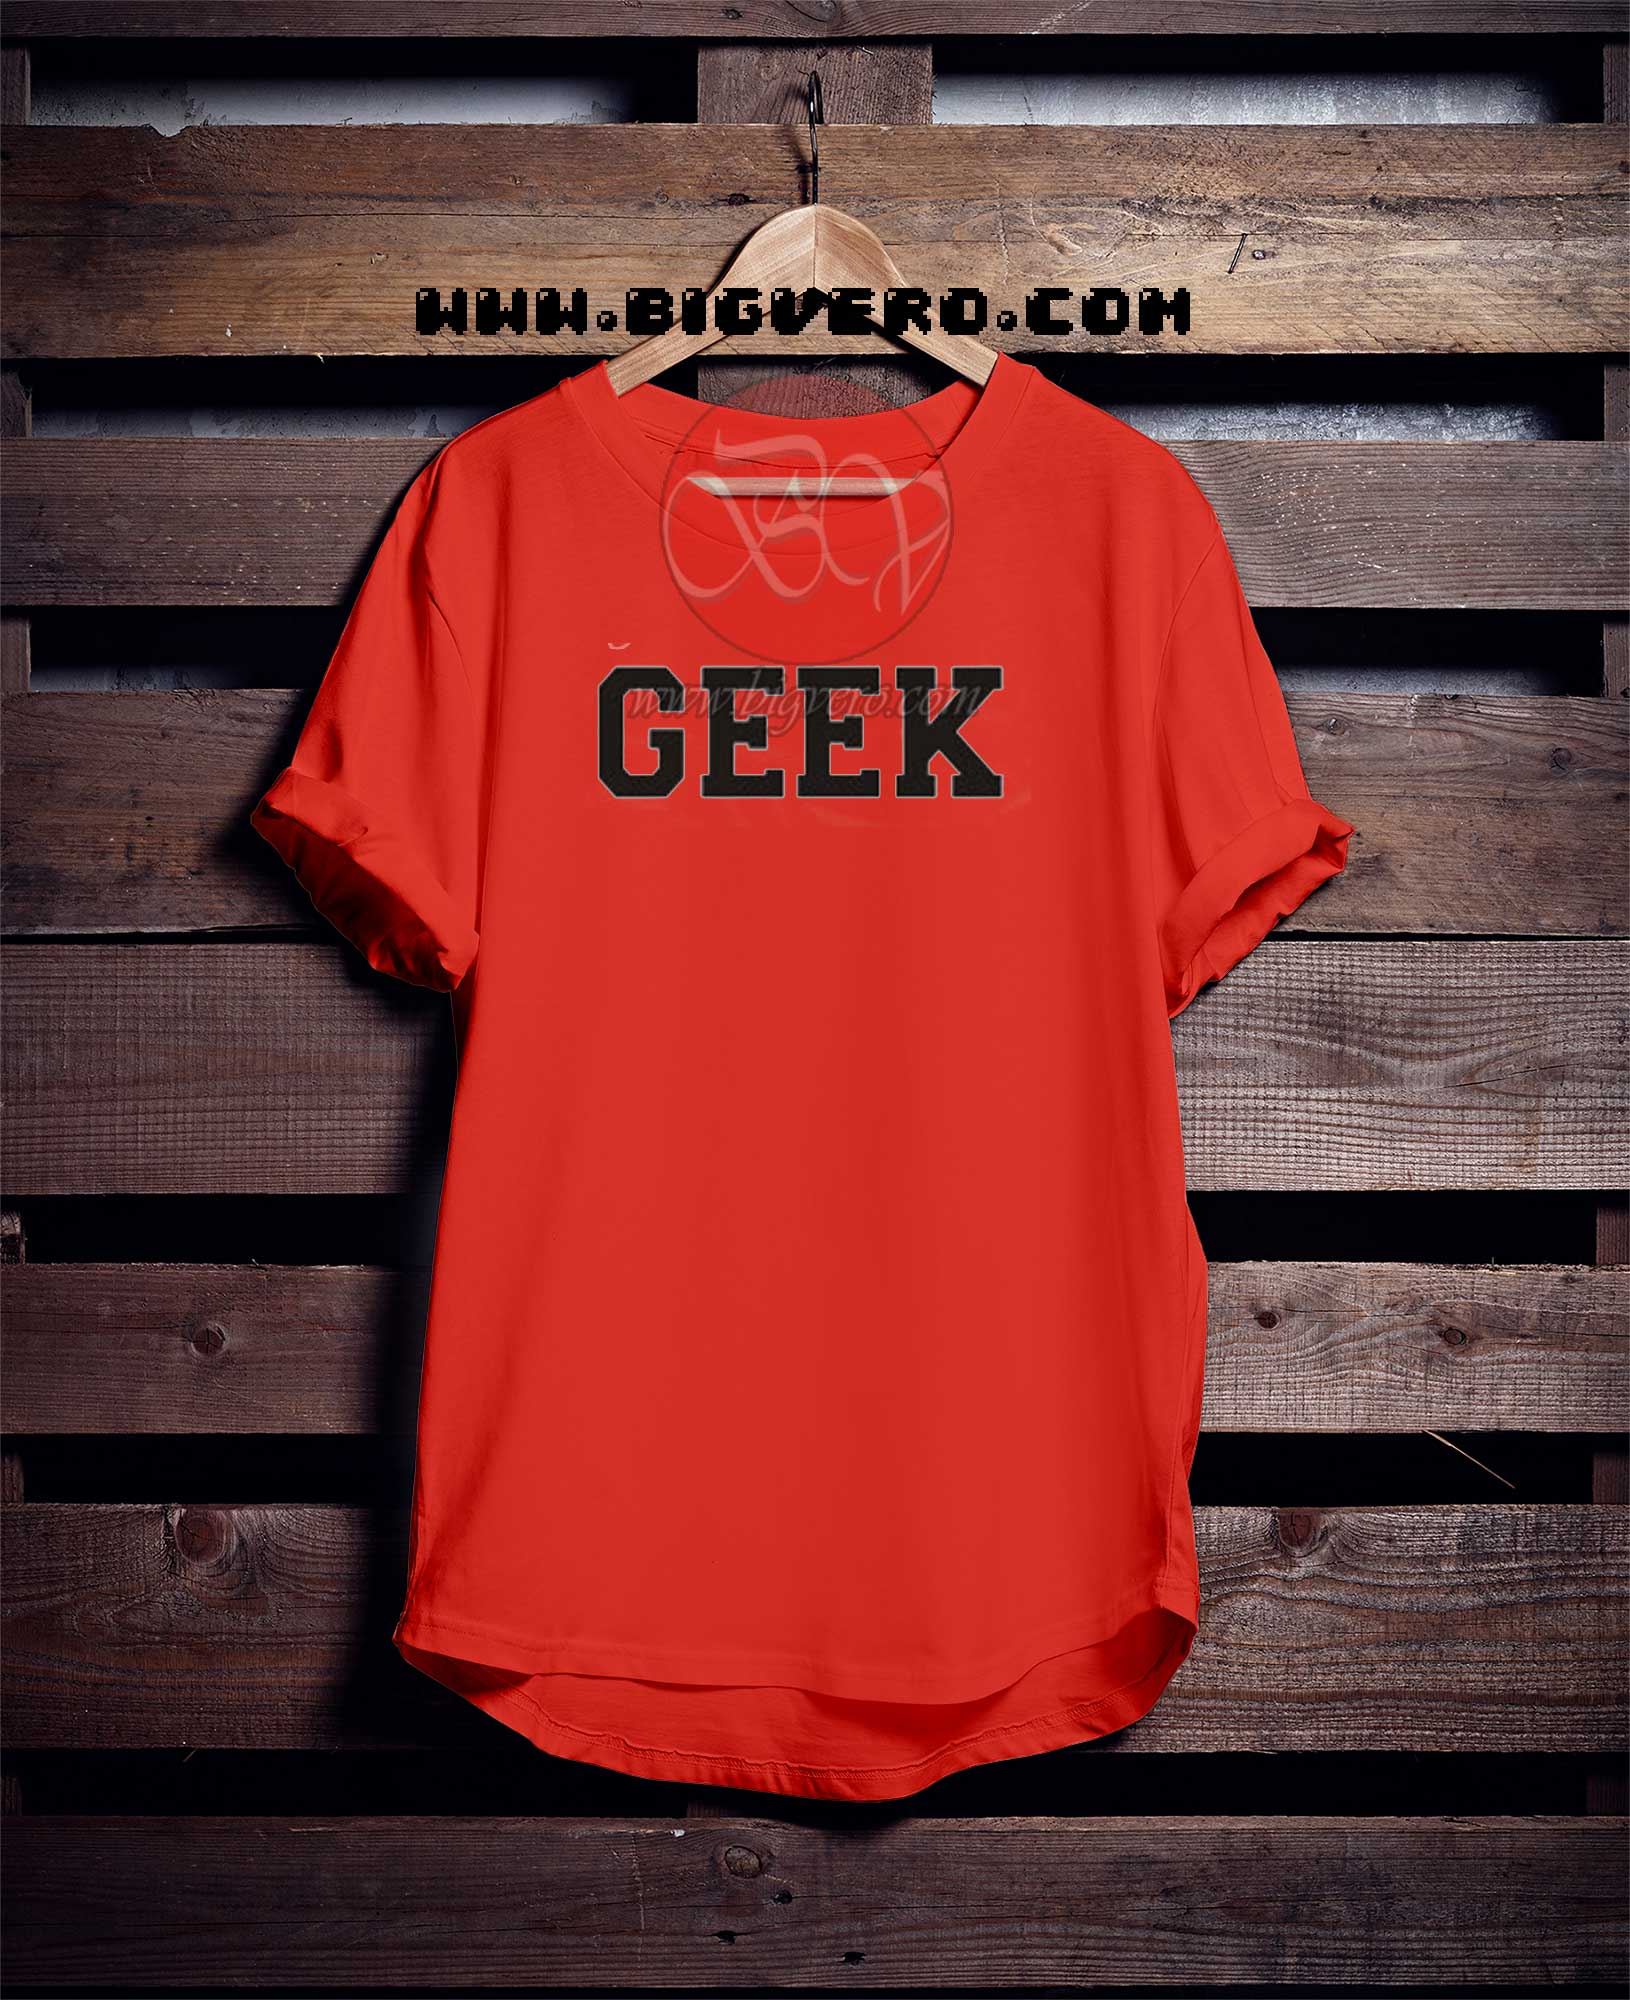 Ever Best Limited Shirts Consulting Engineering T – Edge And Geek jGSMLqVUzp